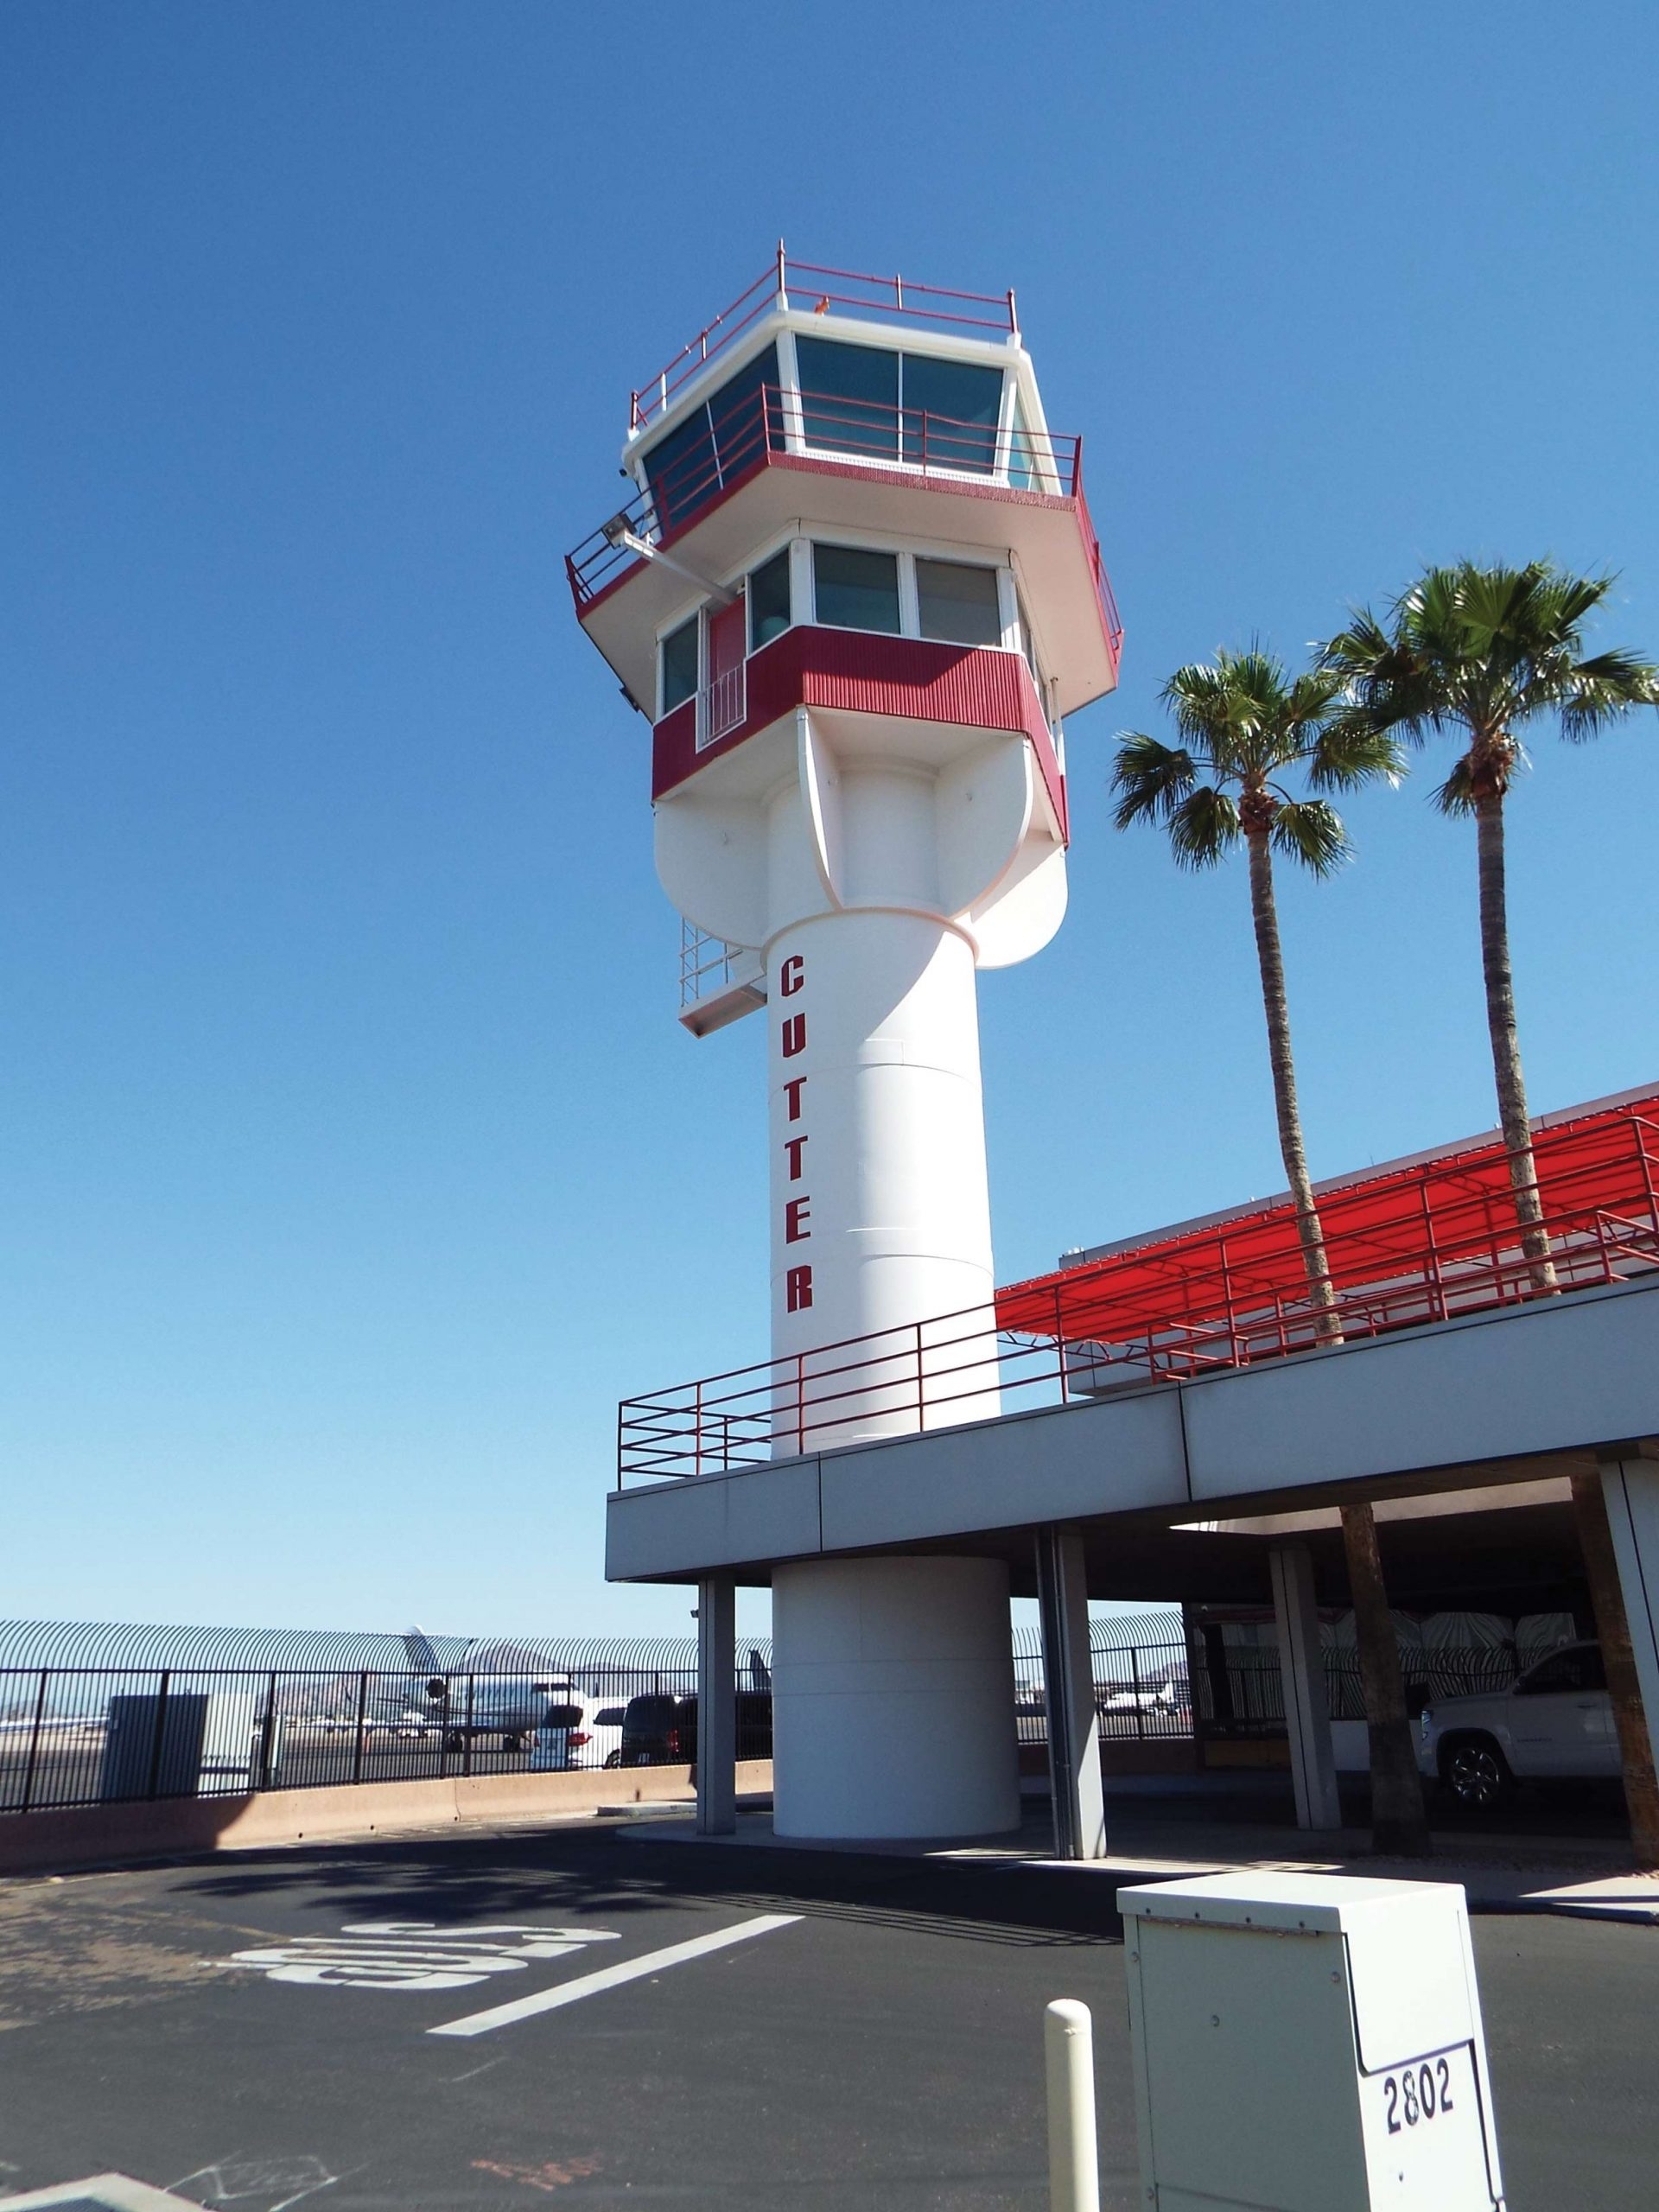 Terminal 1 control tower; photo courtesy commons.wikimedia.org